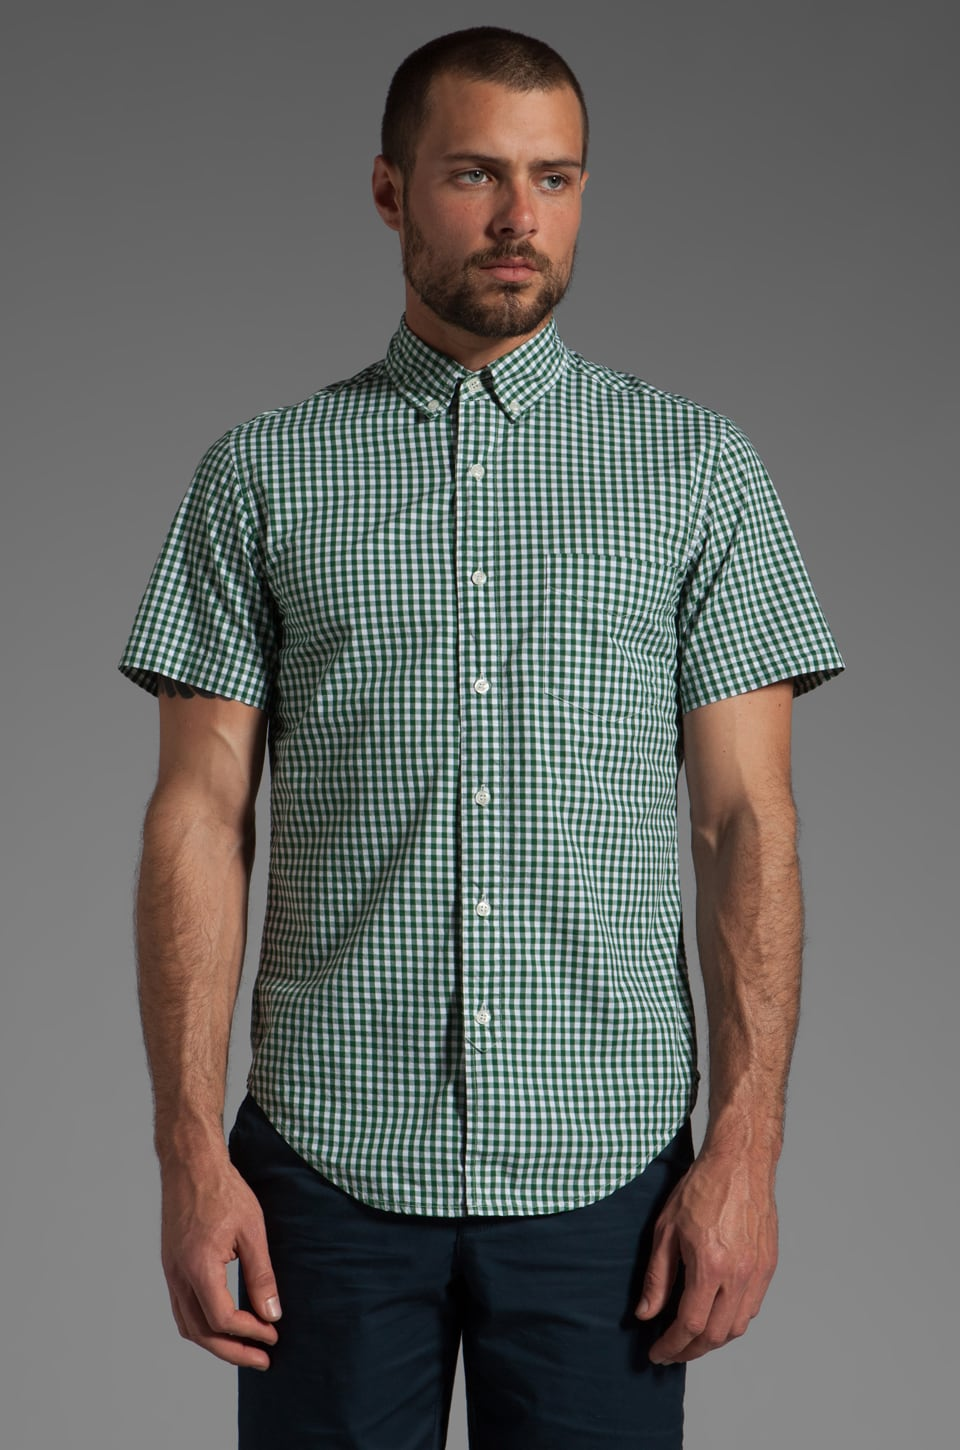 Shades of Grey by Micah Cohen S/S Button Down Shirt in Green Gingham